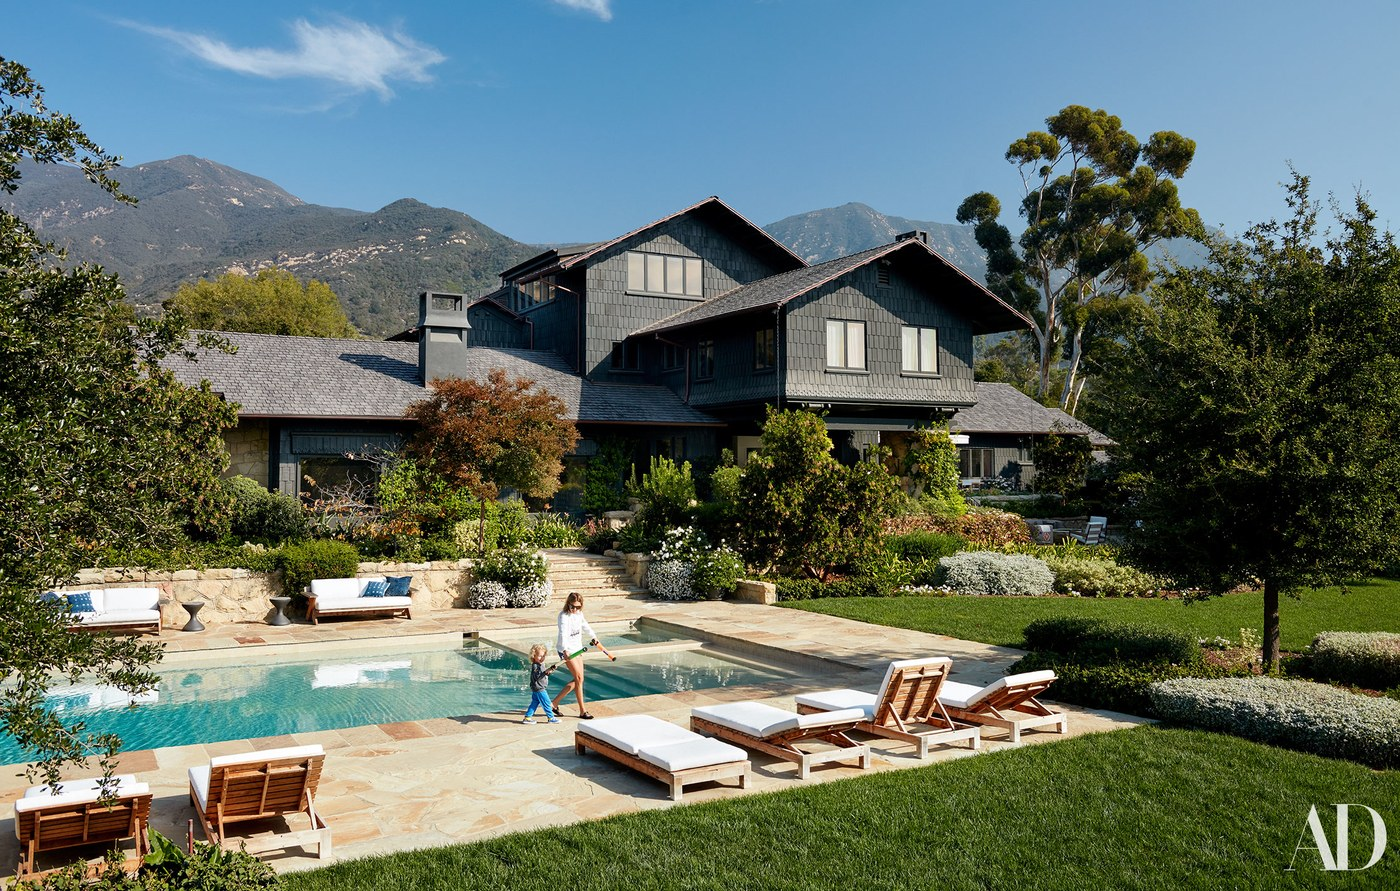 In AD: A Montecito Beauty